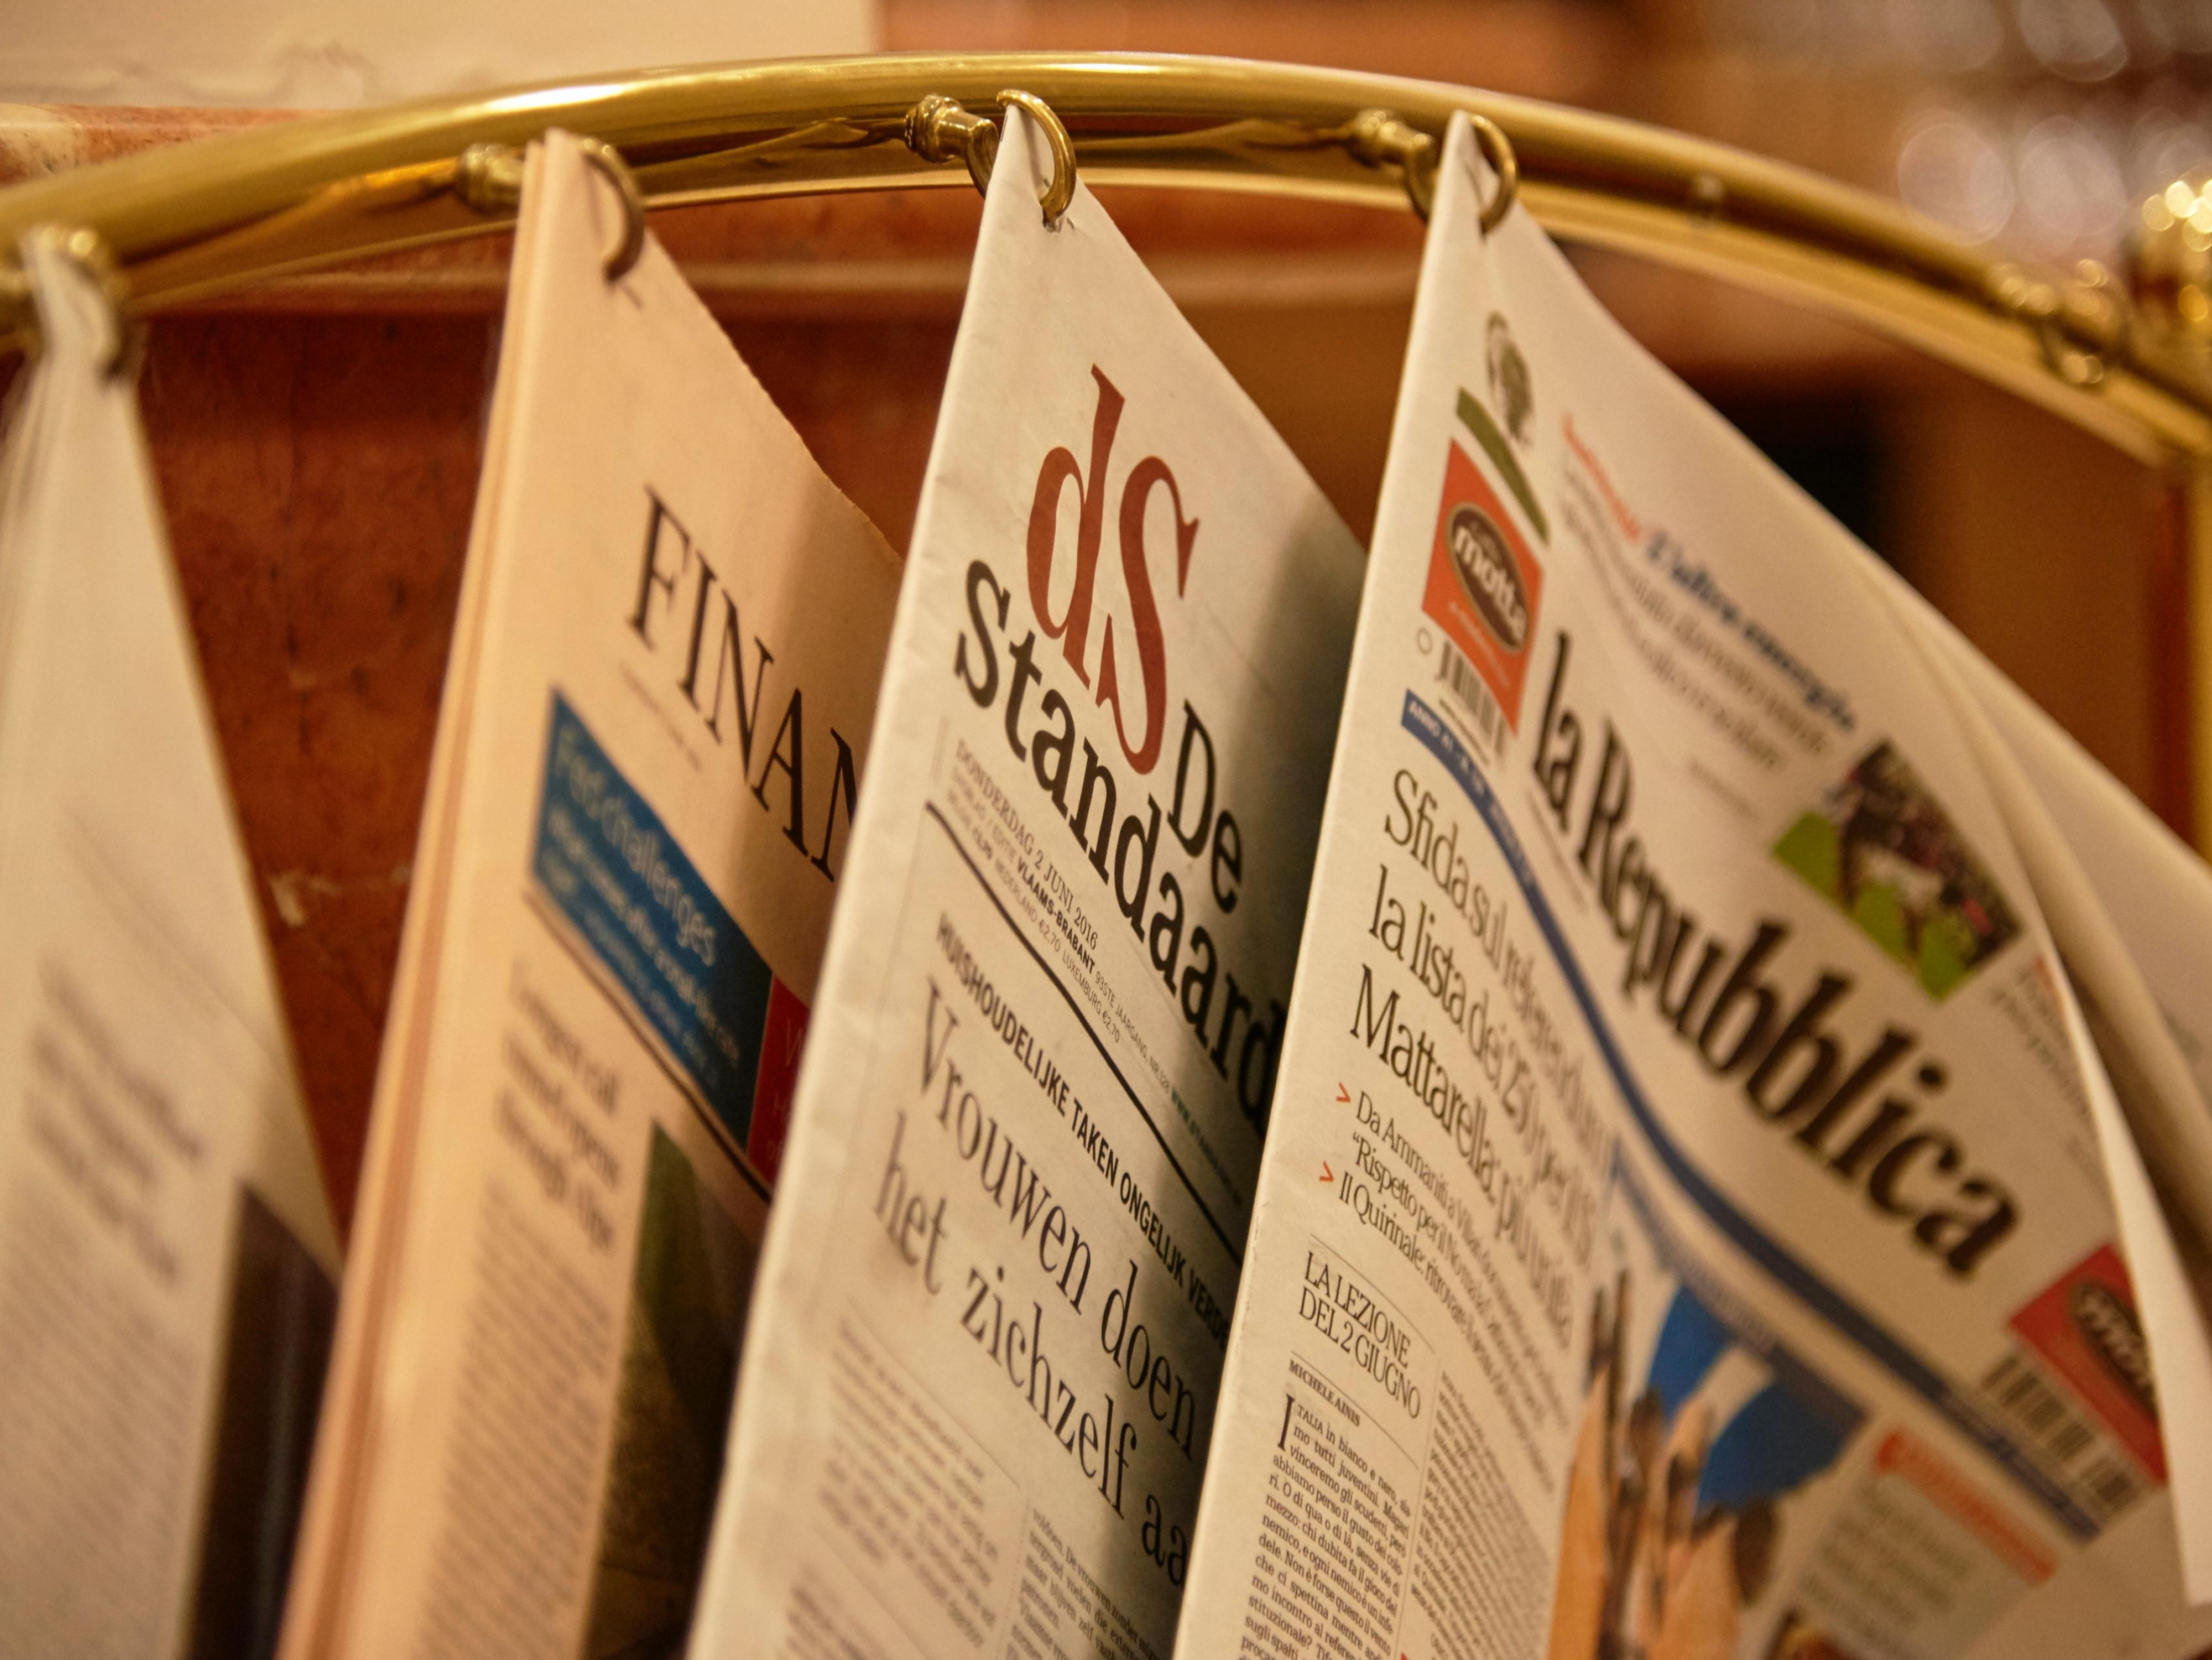 Daily newspapers available